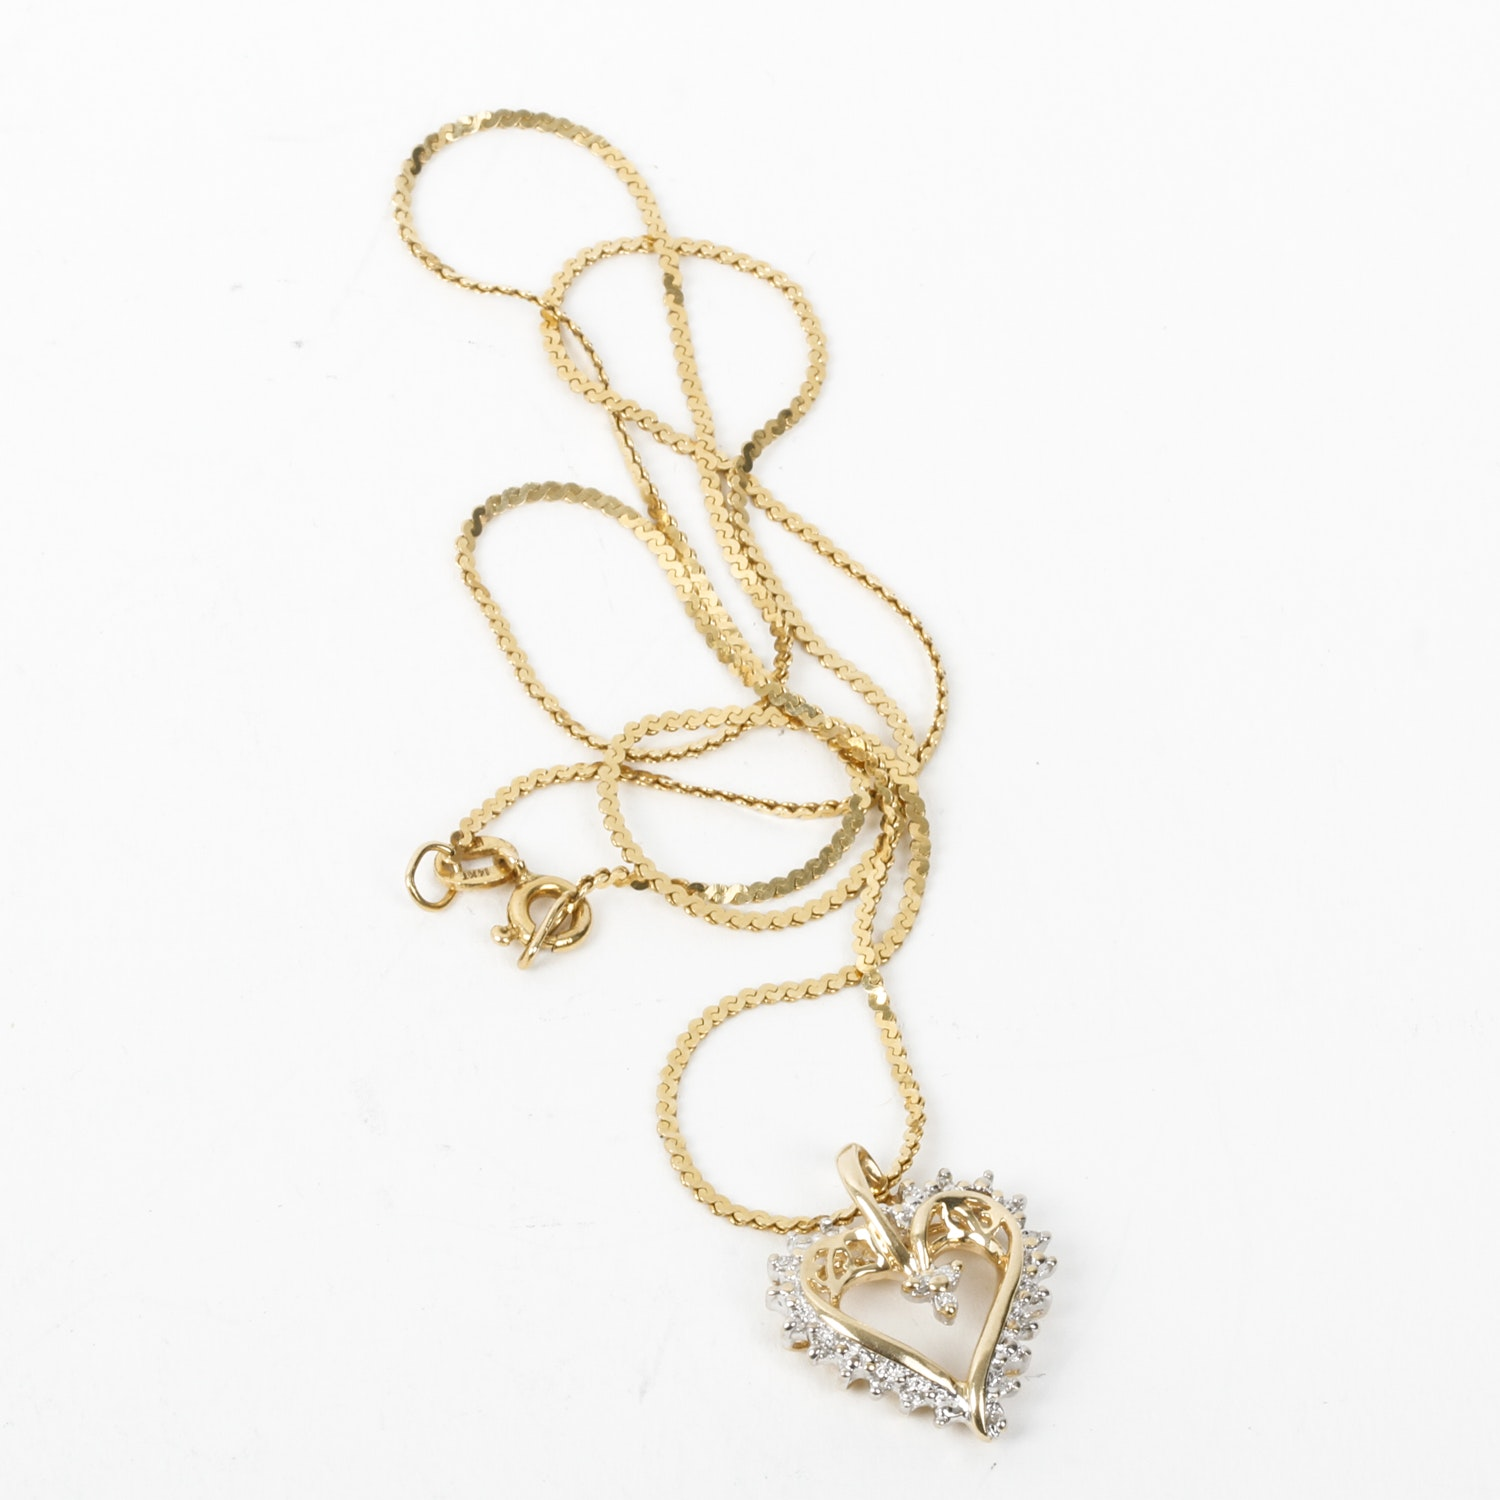 10K Yellow Gold and Diamond Open Heart Pendant with 14K Serpentine Chain